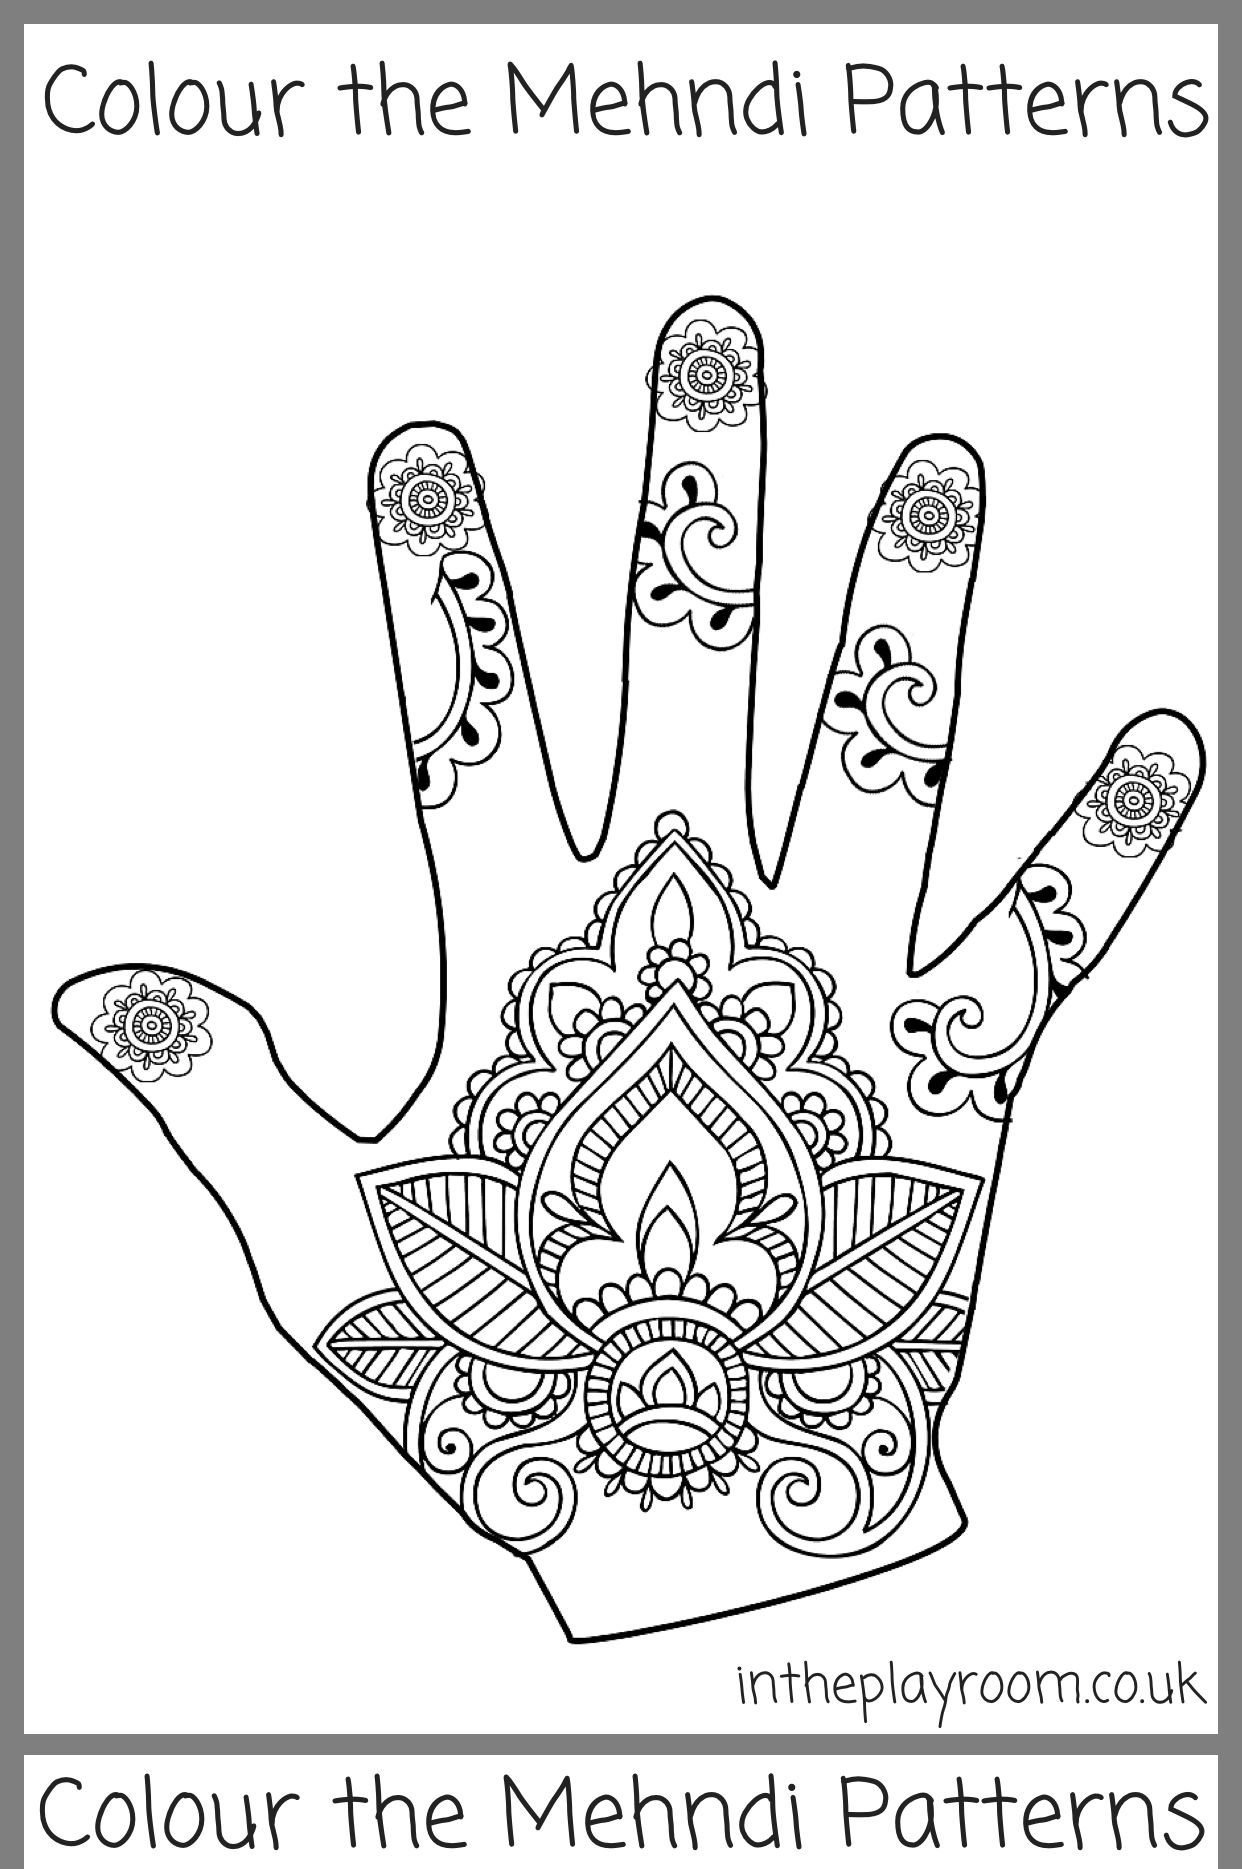 Pin By Jessica Peck On Domain Celebrations 2018 Mehndi Patterns Henna Design Printable Henna Designs Hand